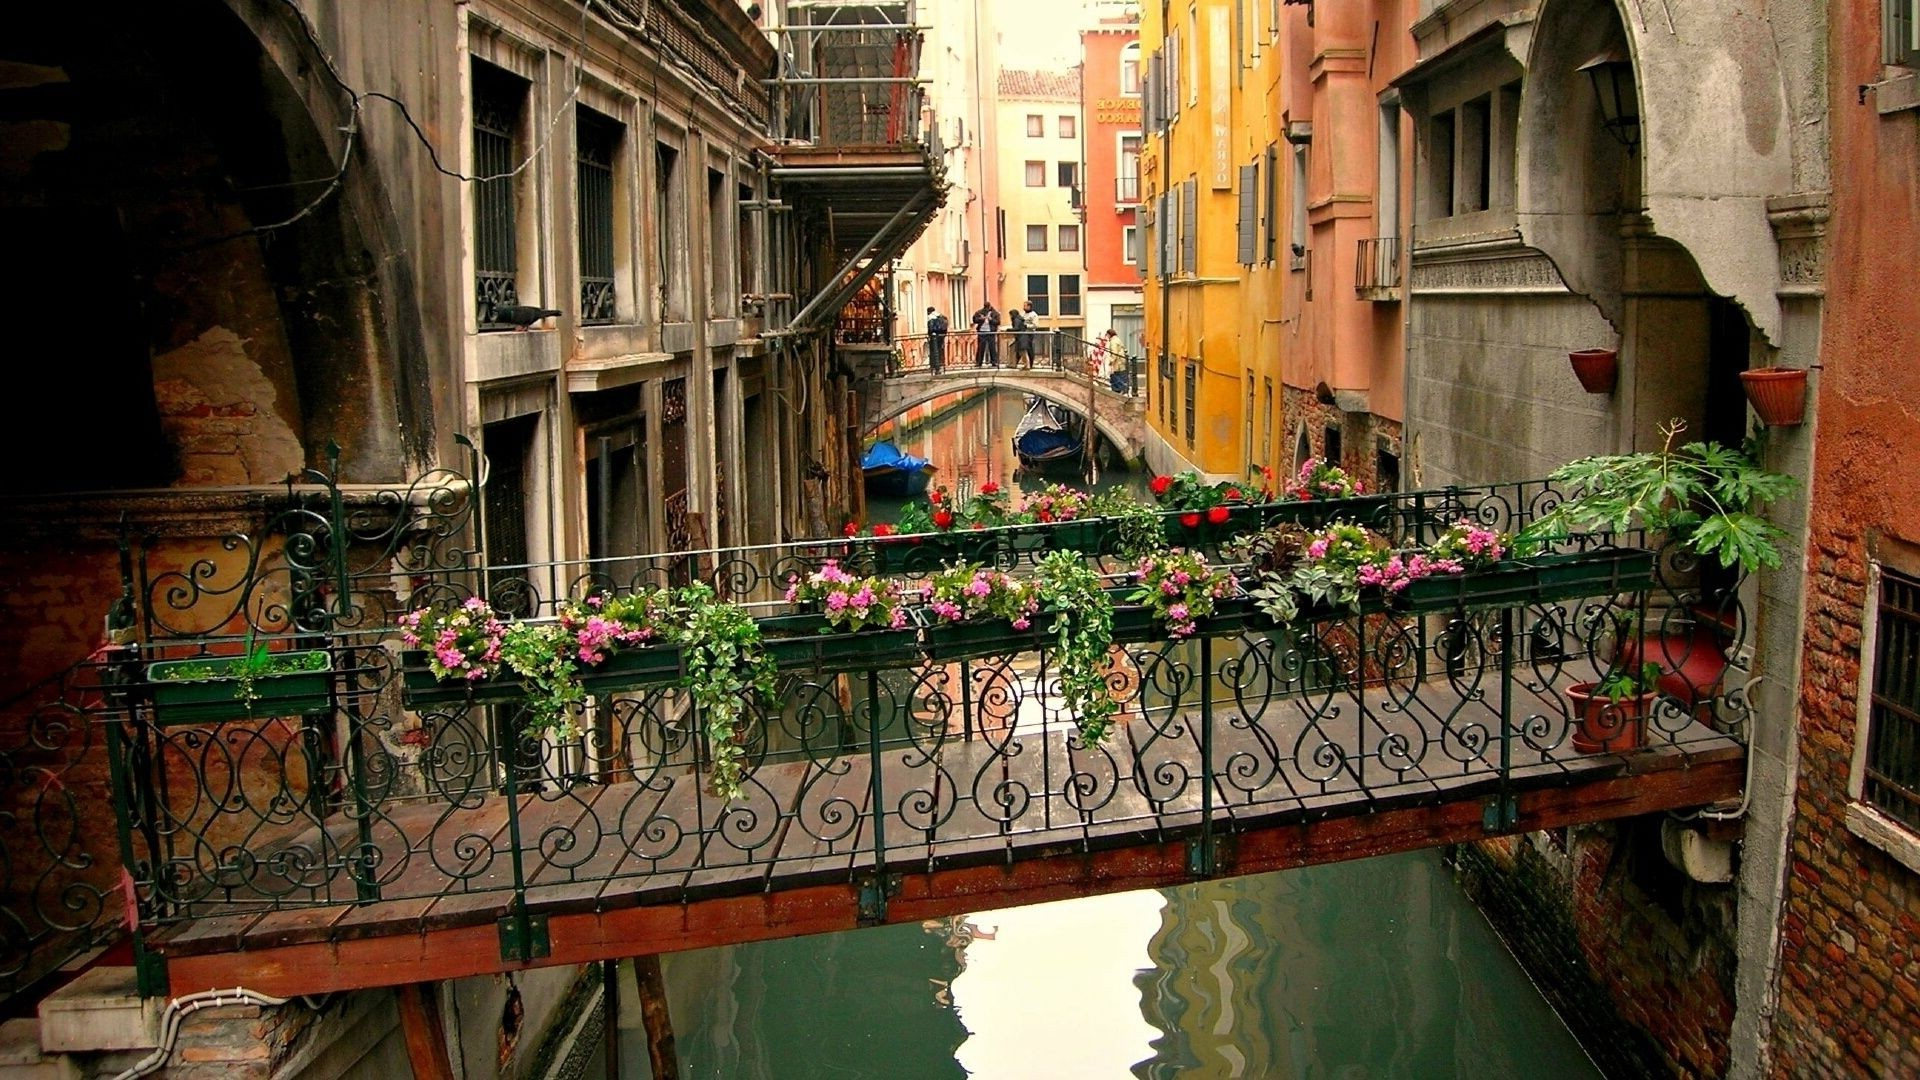 bridges architecture house street city travel town building urban window tourism balcony old